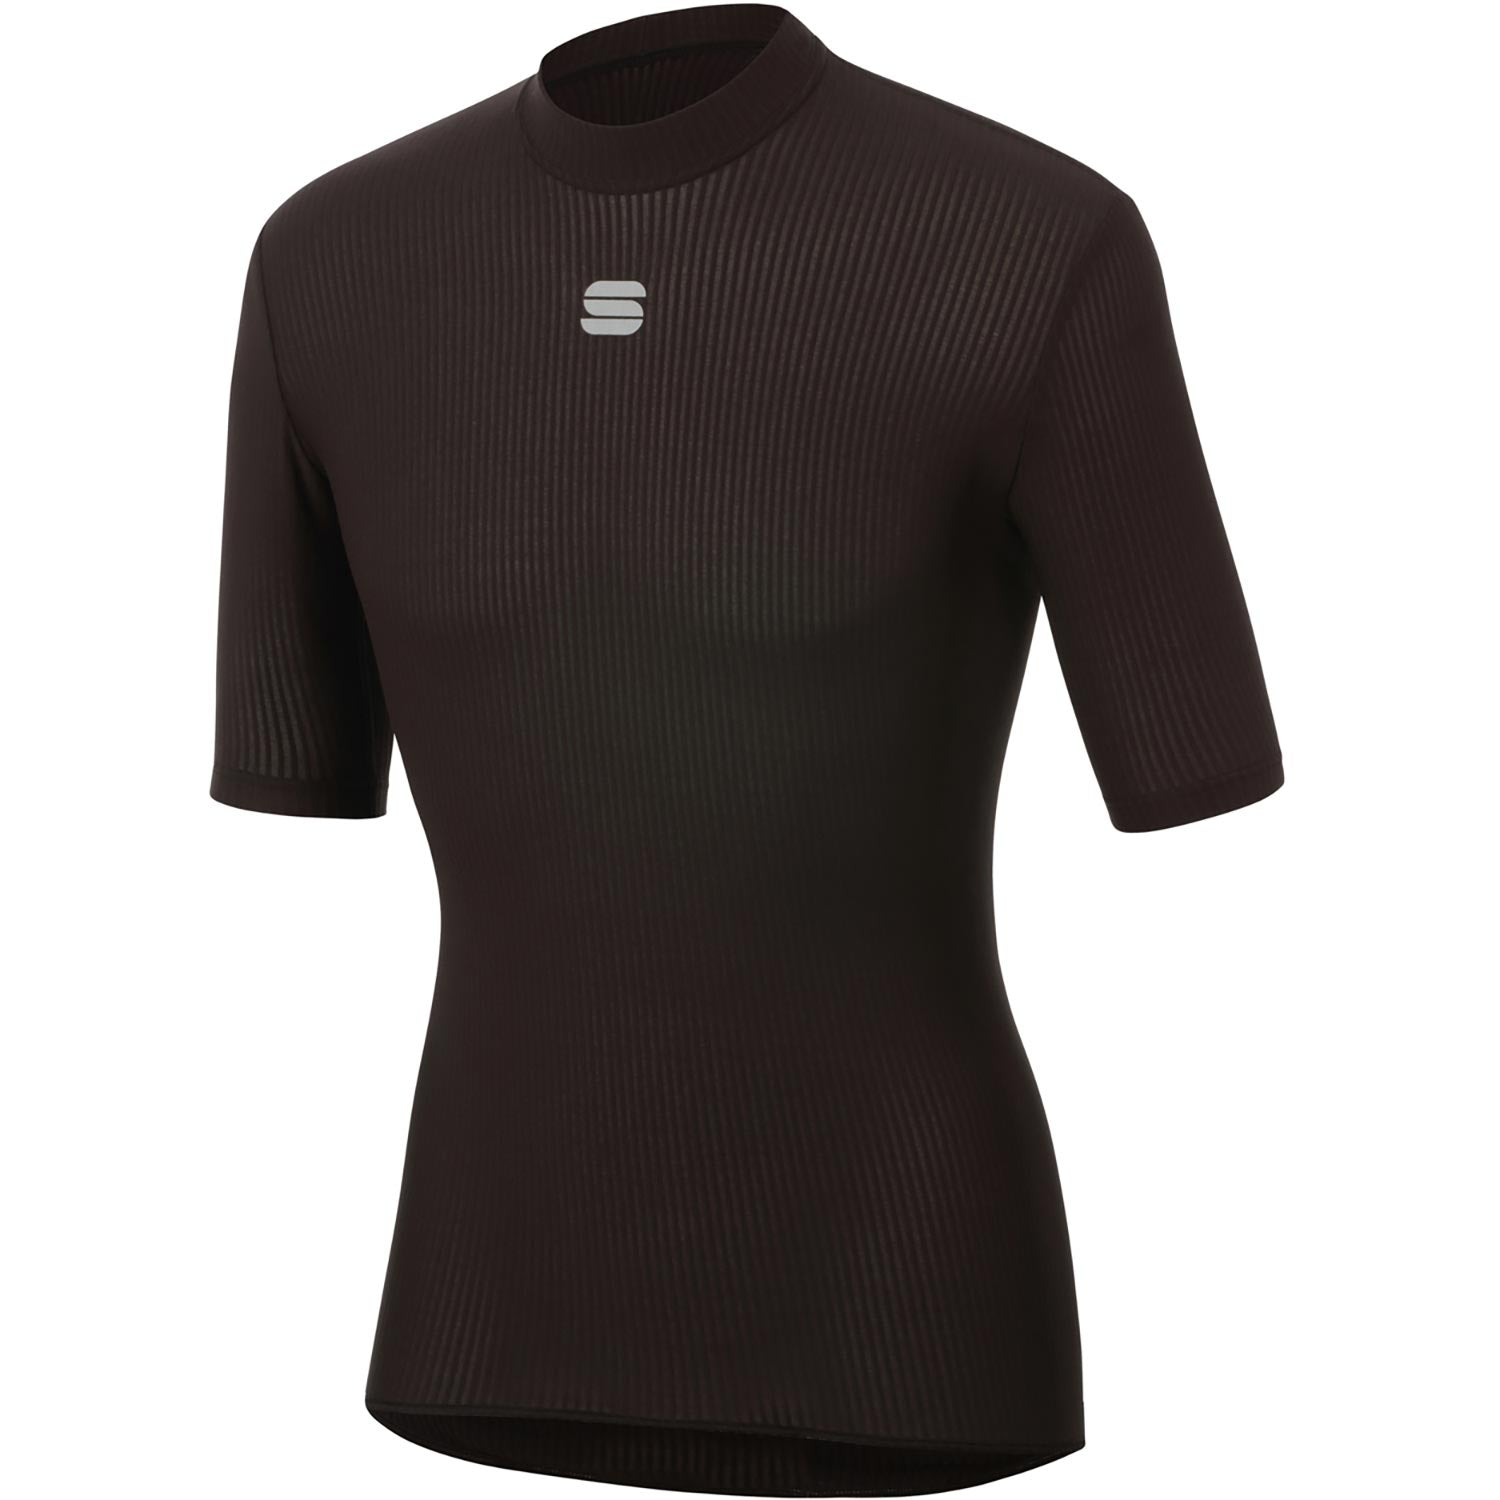 Sportful-Sportful BodyFit Pro Short Sleeve Baselayer-Black-XS-SF205640021-saddleback-elite-performance-cycling